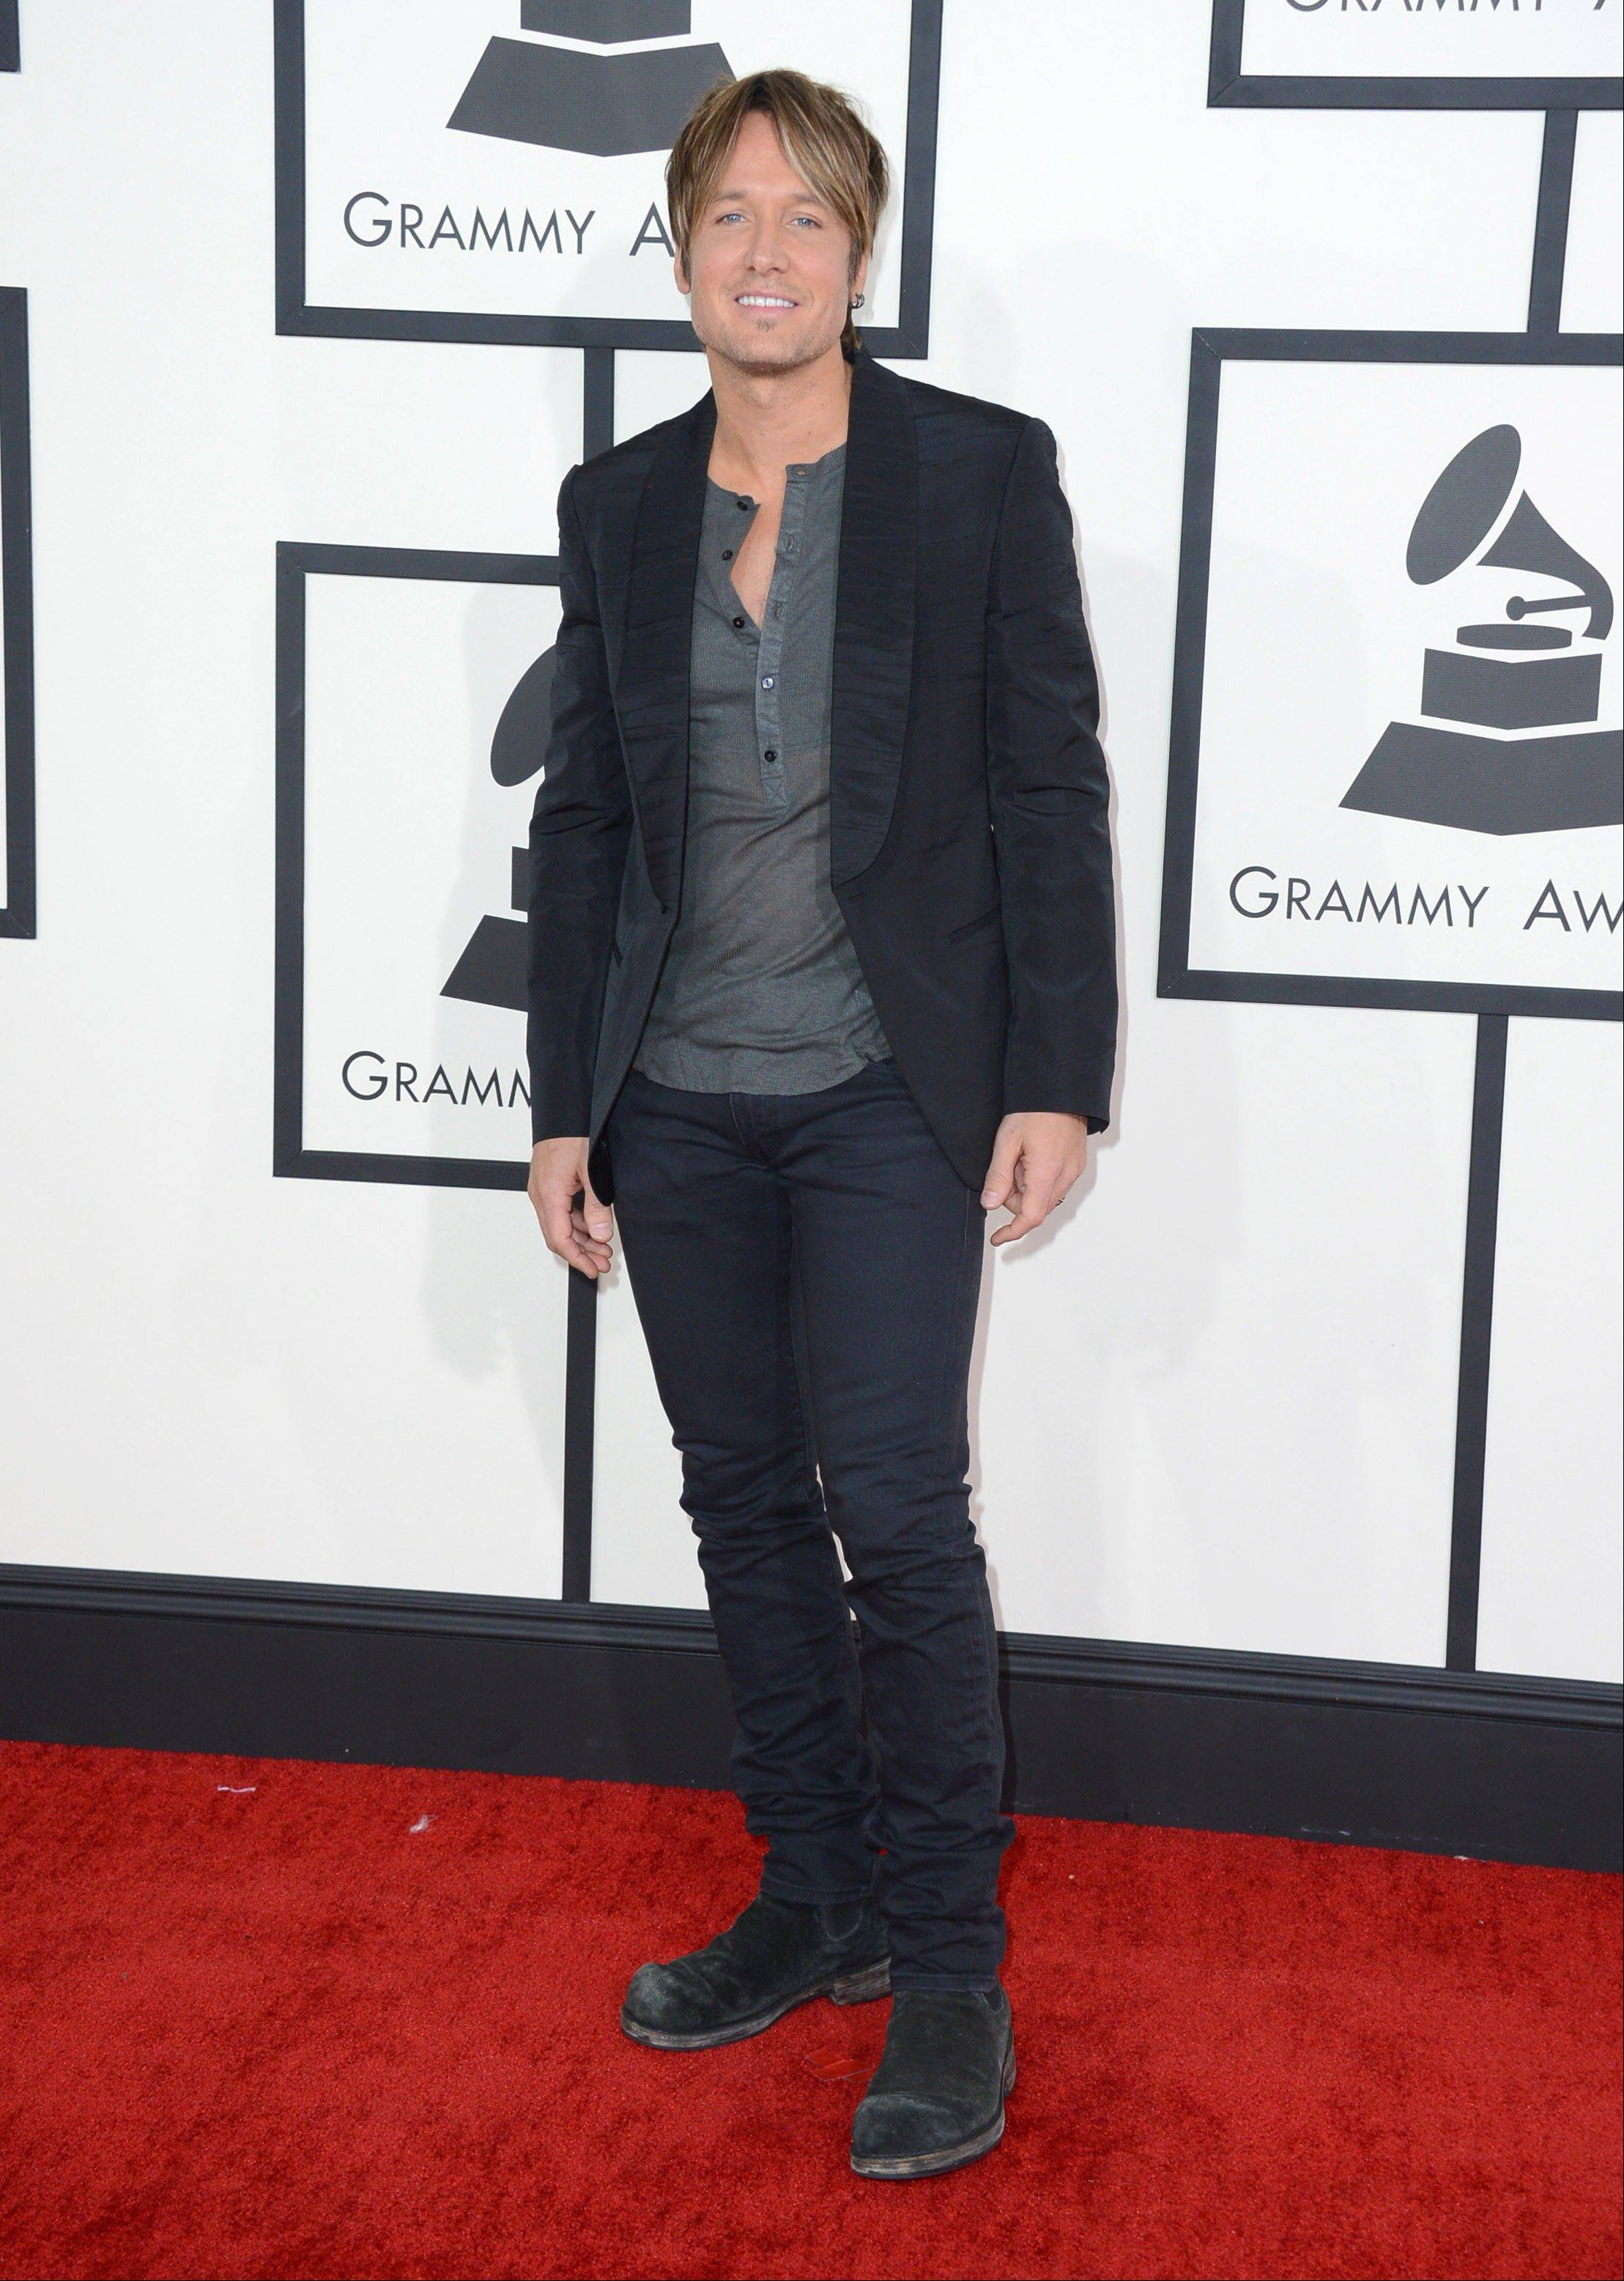 Keith Urban arrives at the 56th annual Grammy Awards at Staples Center on Sunday.